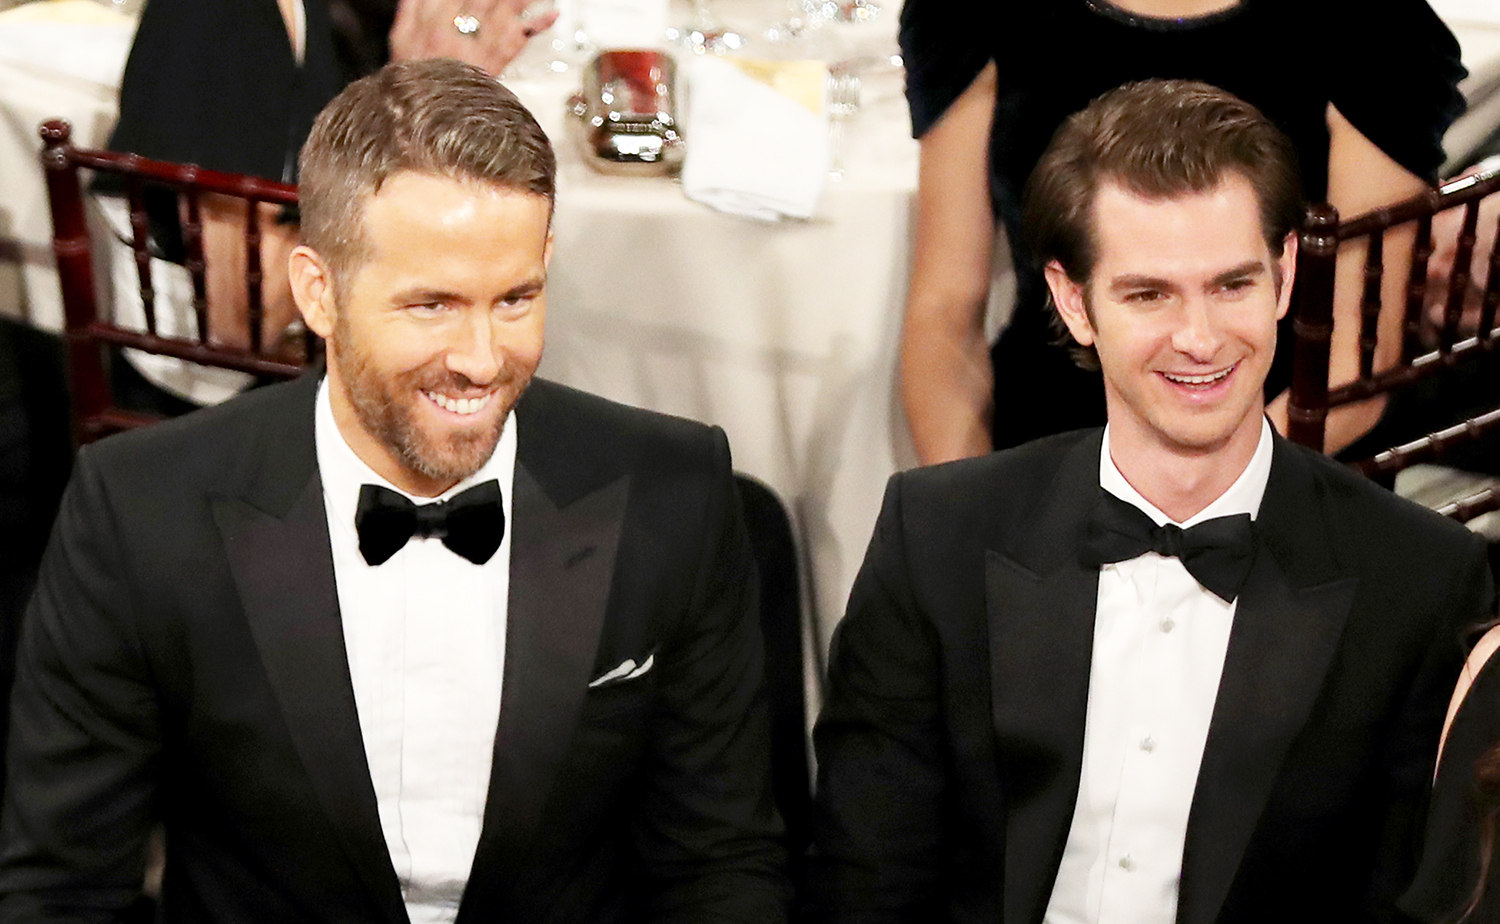 Ryan Reynolds and Andrew Garfield at the 74th Annual Golden Globe Awards held at the Beverly Hilton Hotel on Jan. 8, 2017.